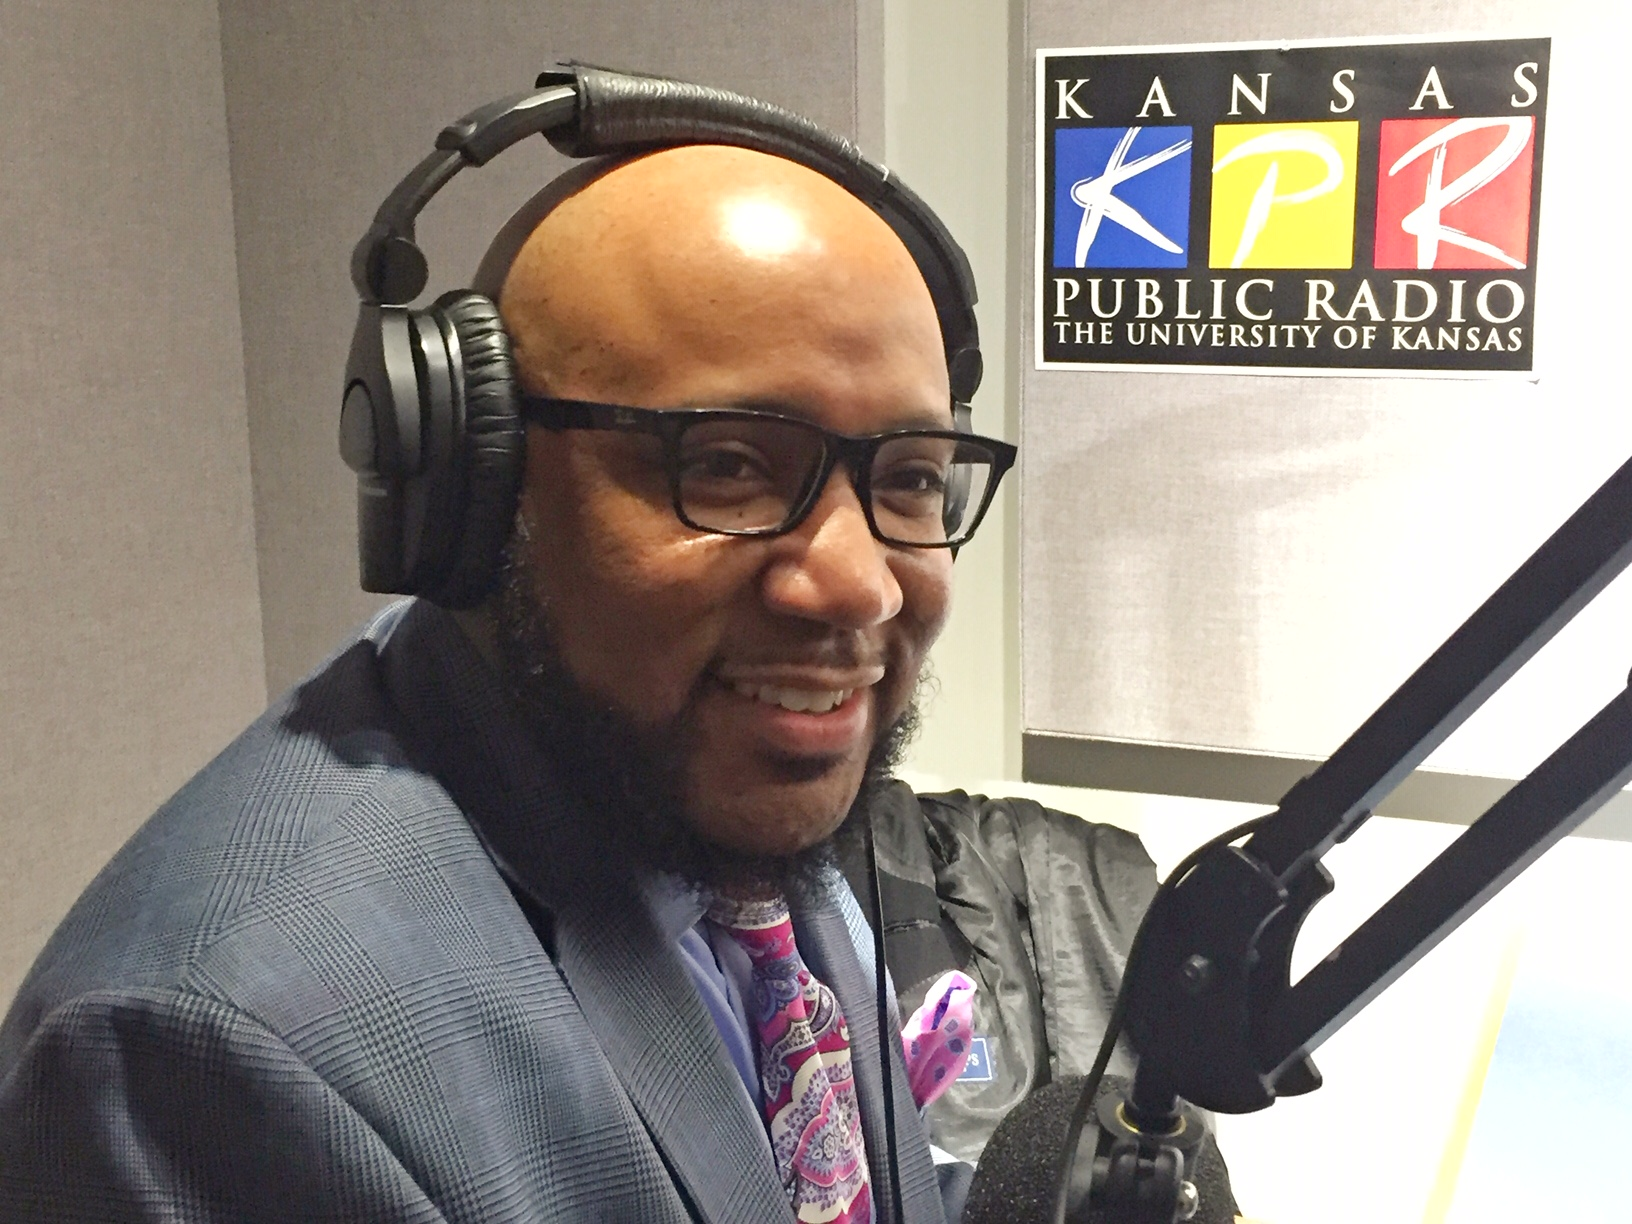 Dr. Anthony Lewis, superintendent for Lawrence Public Schools, answering questions at Kansas Public Radio.  (Photo by J. Schafer)